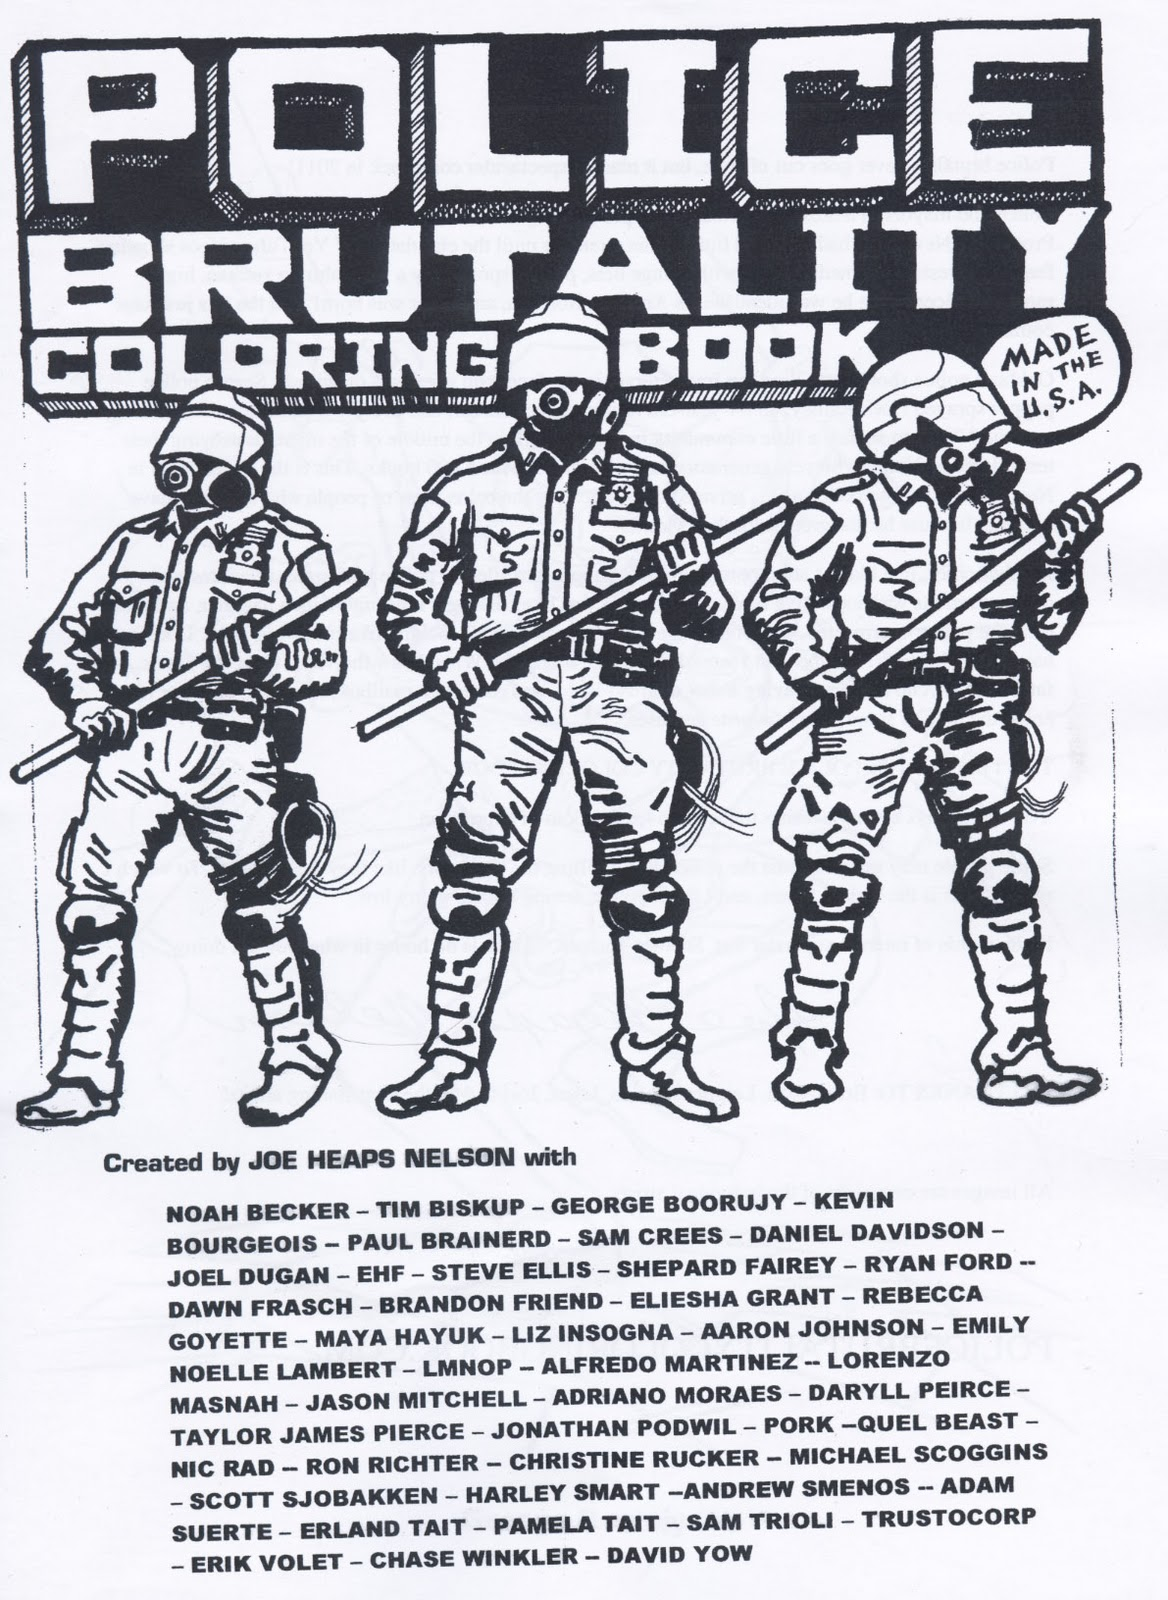 the artwork and anxiety garden of daryll peirce police brutality